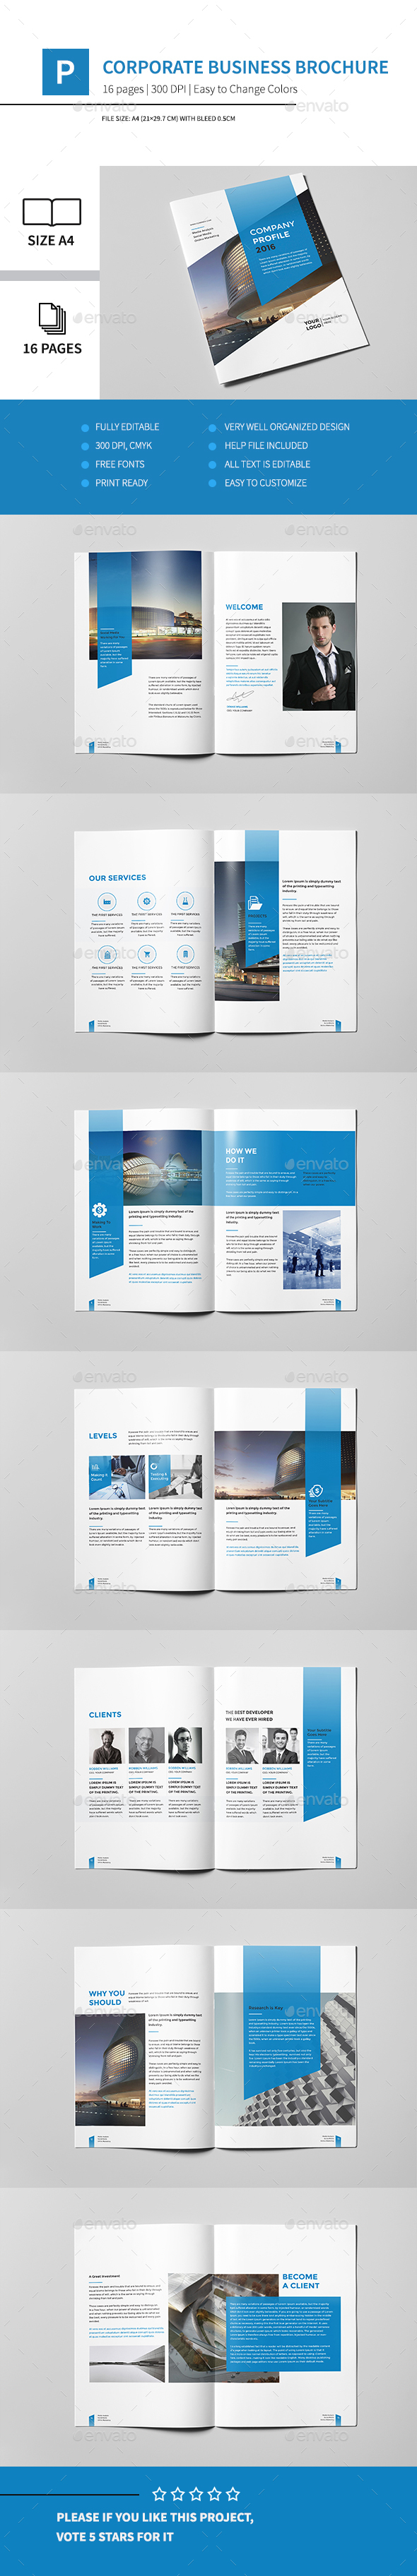 Corporate business brochure 16 pages a4 by pro gh graphicriver corporate business brochure 16 pages a4 accmission Gallery